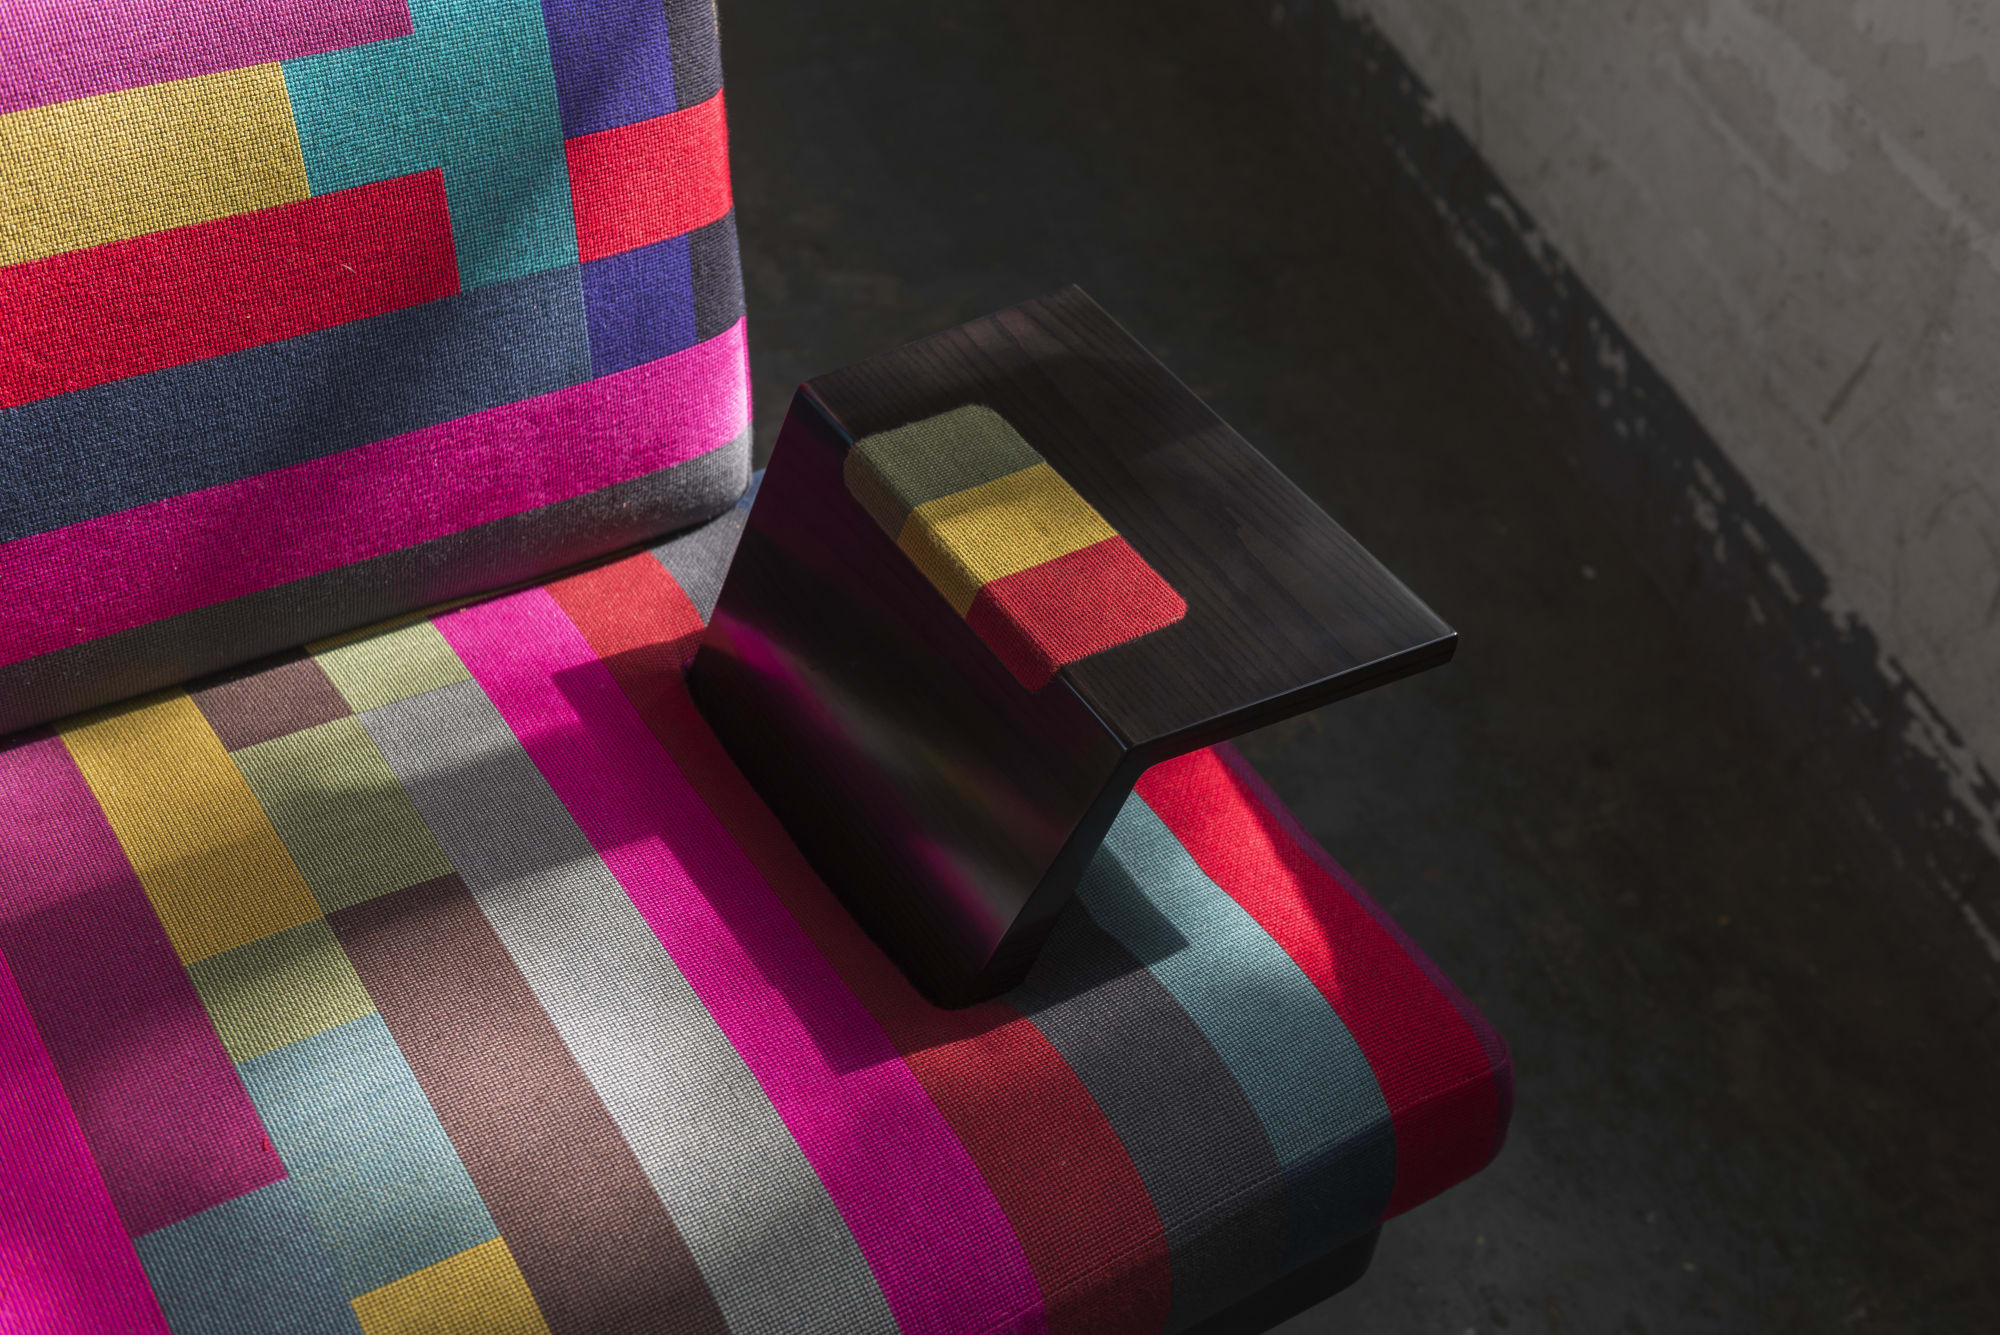 Interior Design by Margo Selby at London, London - Assembly Fabric